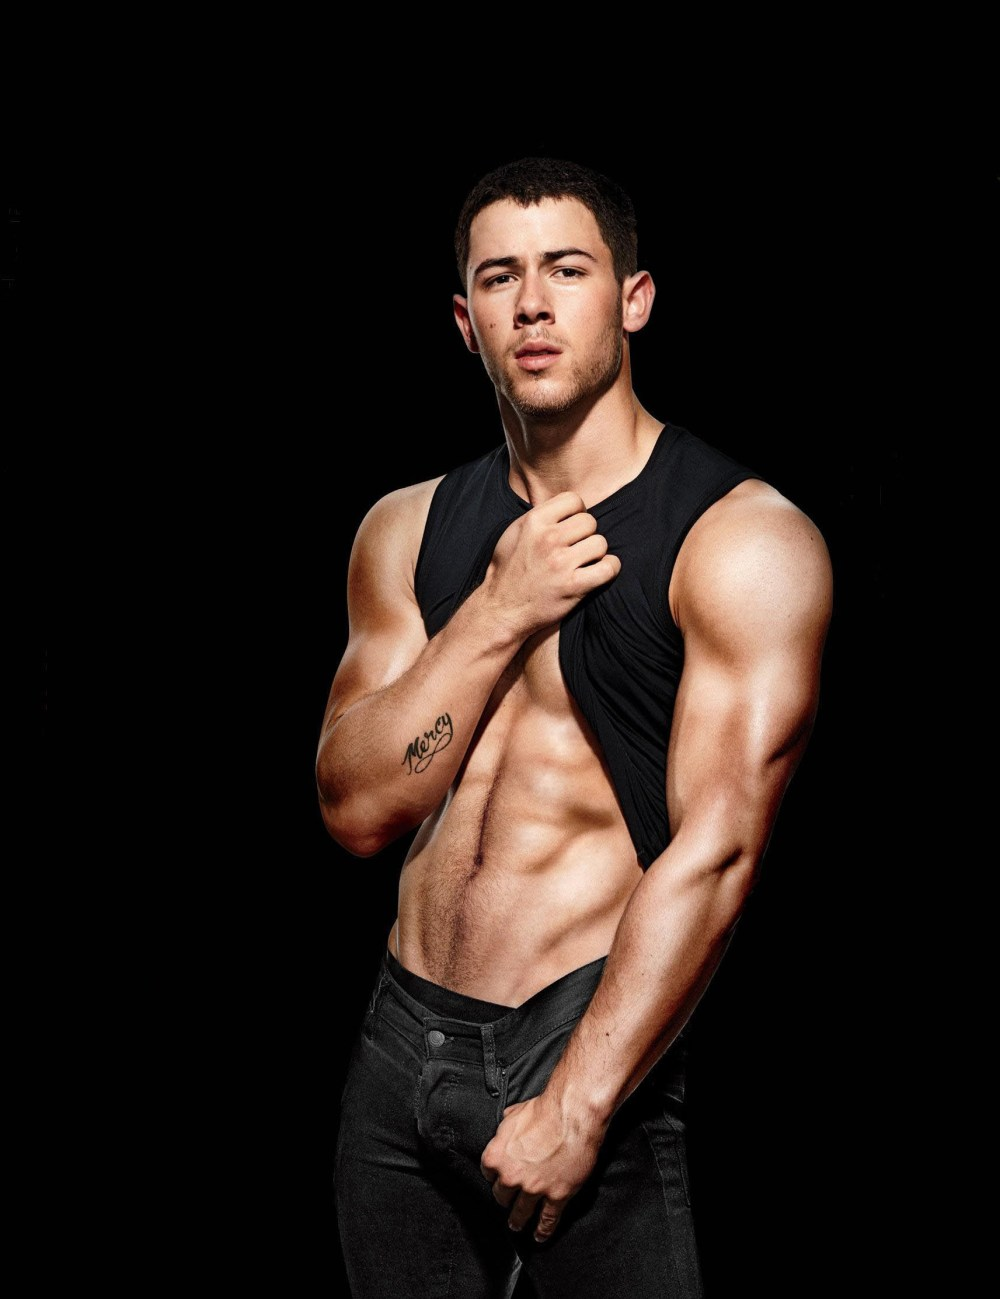 nick-jonas-by-peter-yang